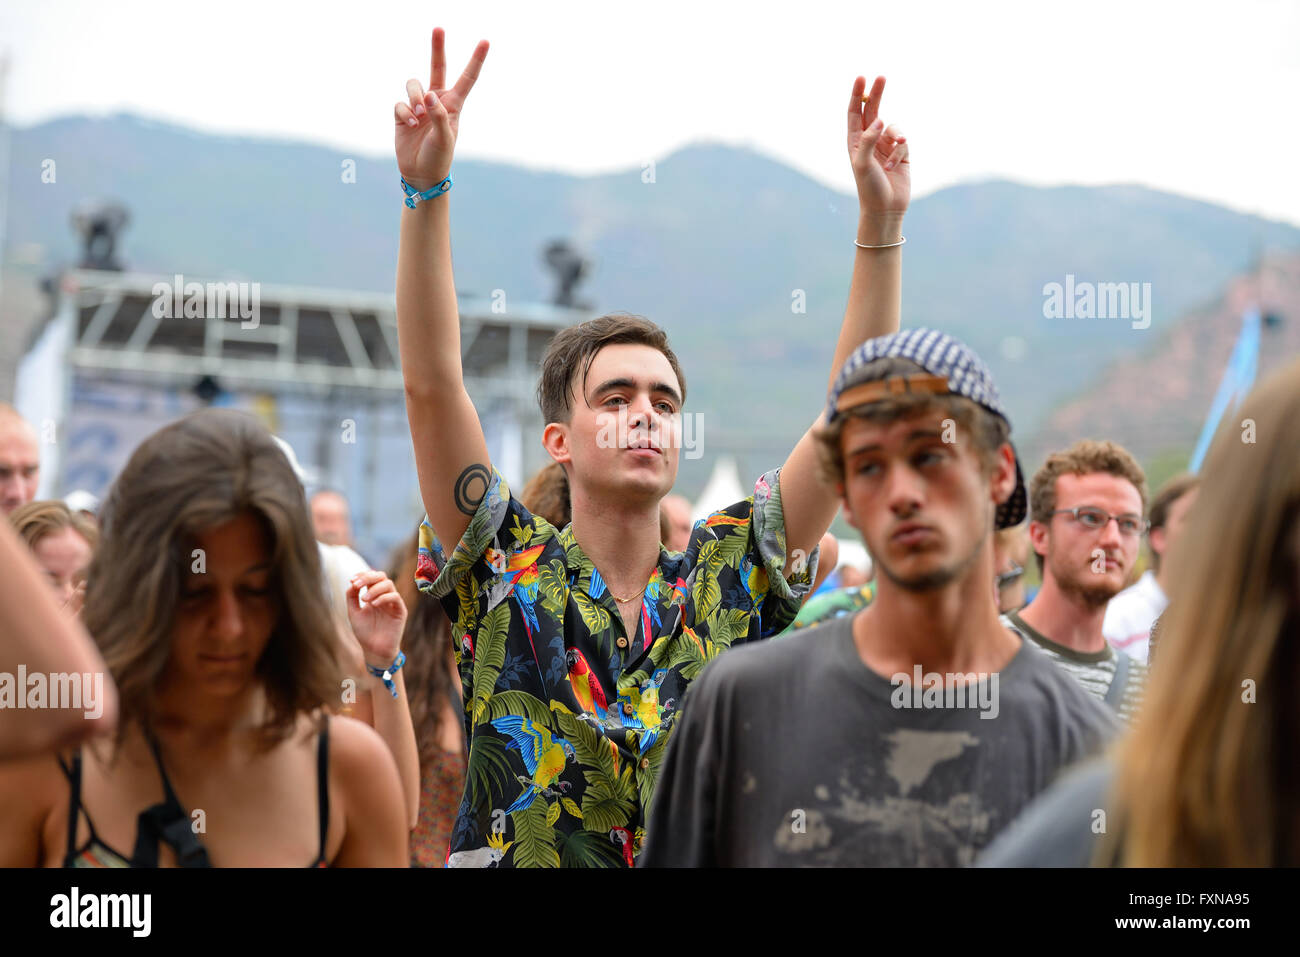 BENICASSIM, SPAIN - JULY 18: Crowd in a concert at FIB Festival on July 18, 2014 in Benicassim, Spain. - Stock Image